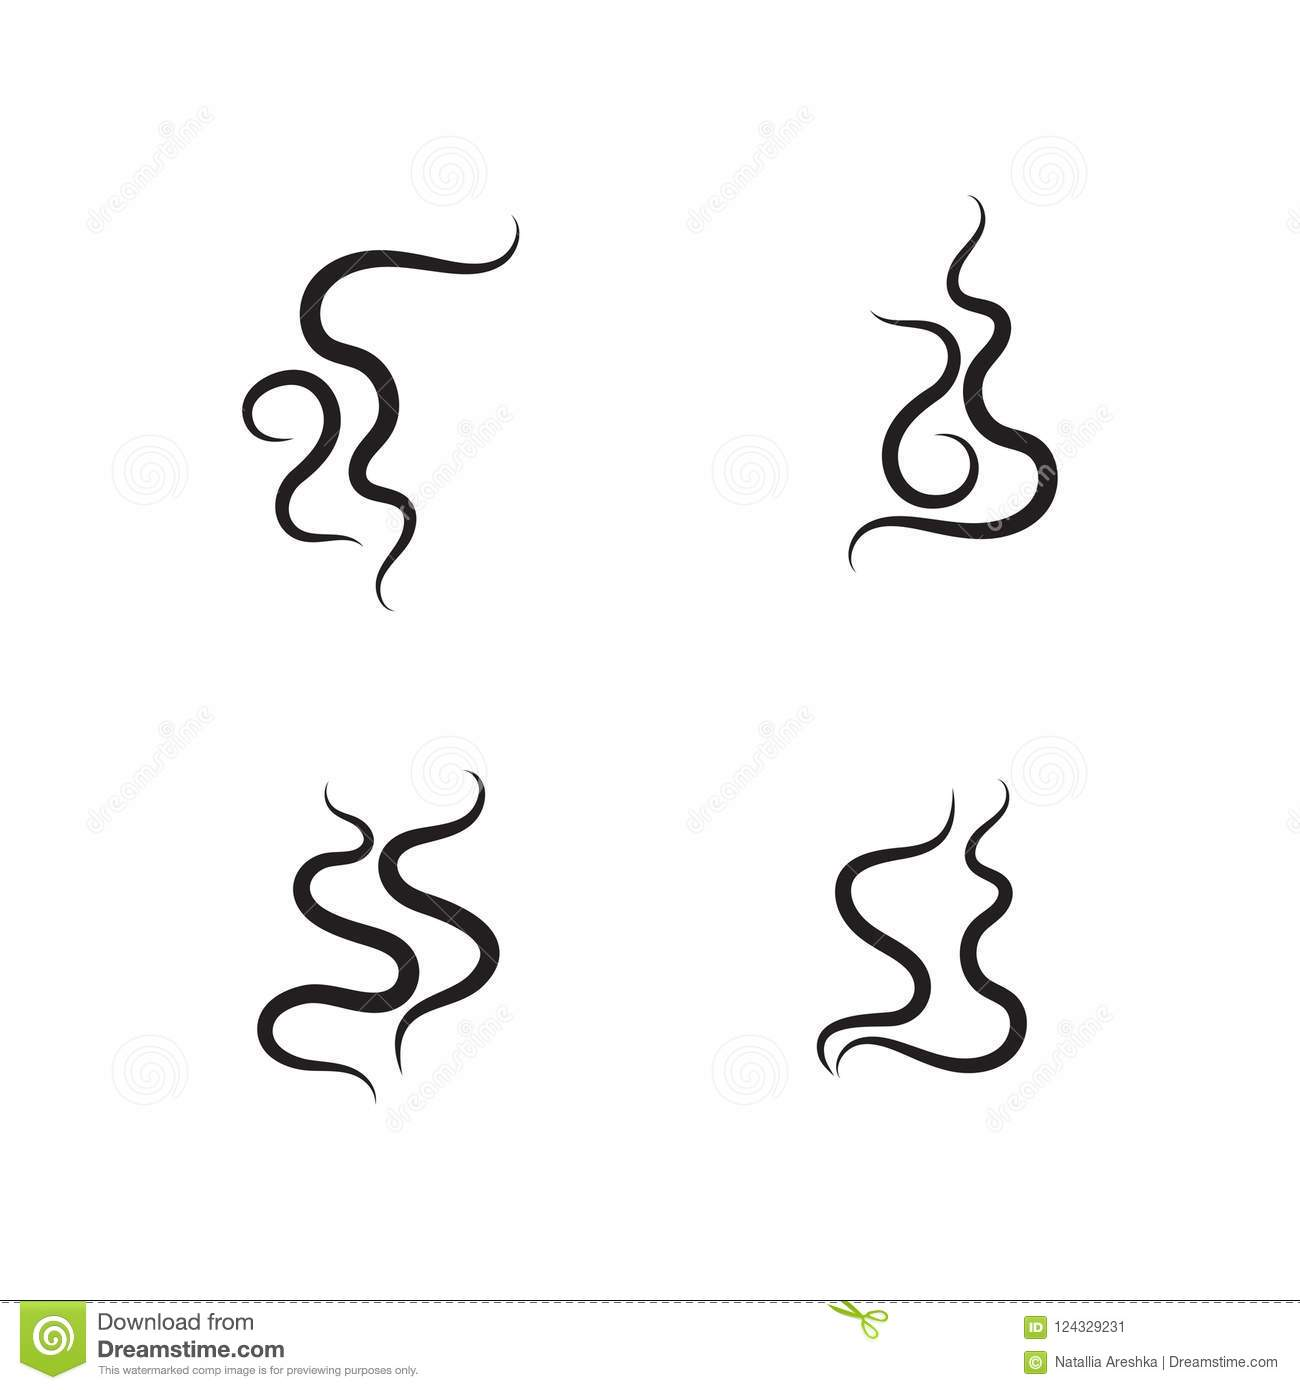 smell aroma sign set stock vector illustration of pattern 124329231 rh dreamstime com small victorian homes small vector network analyzer